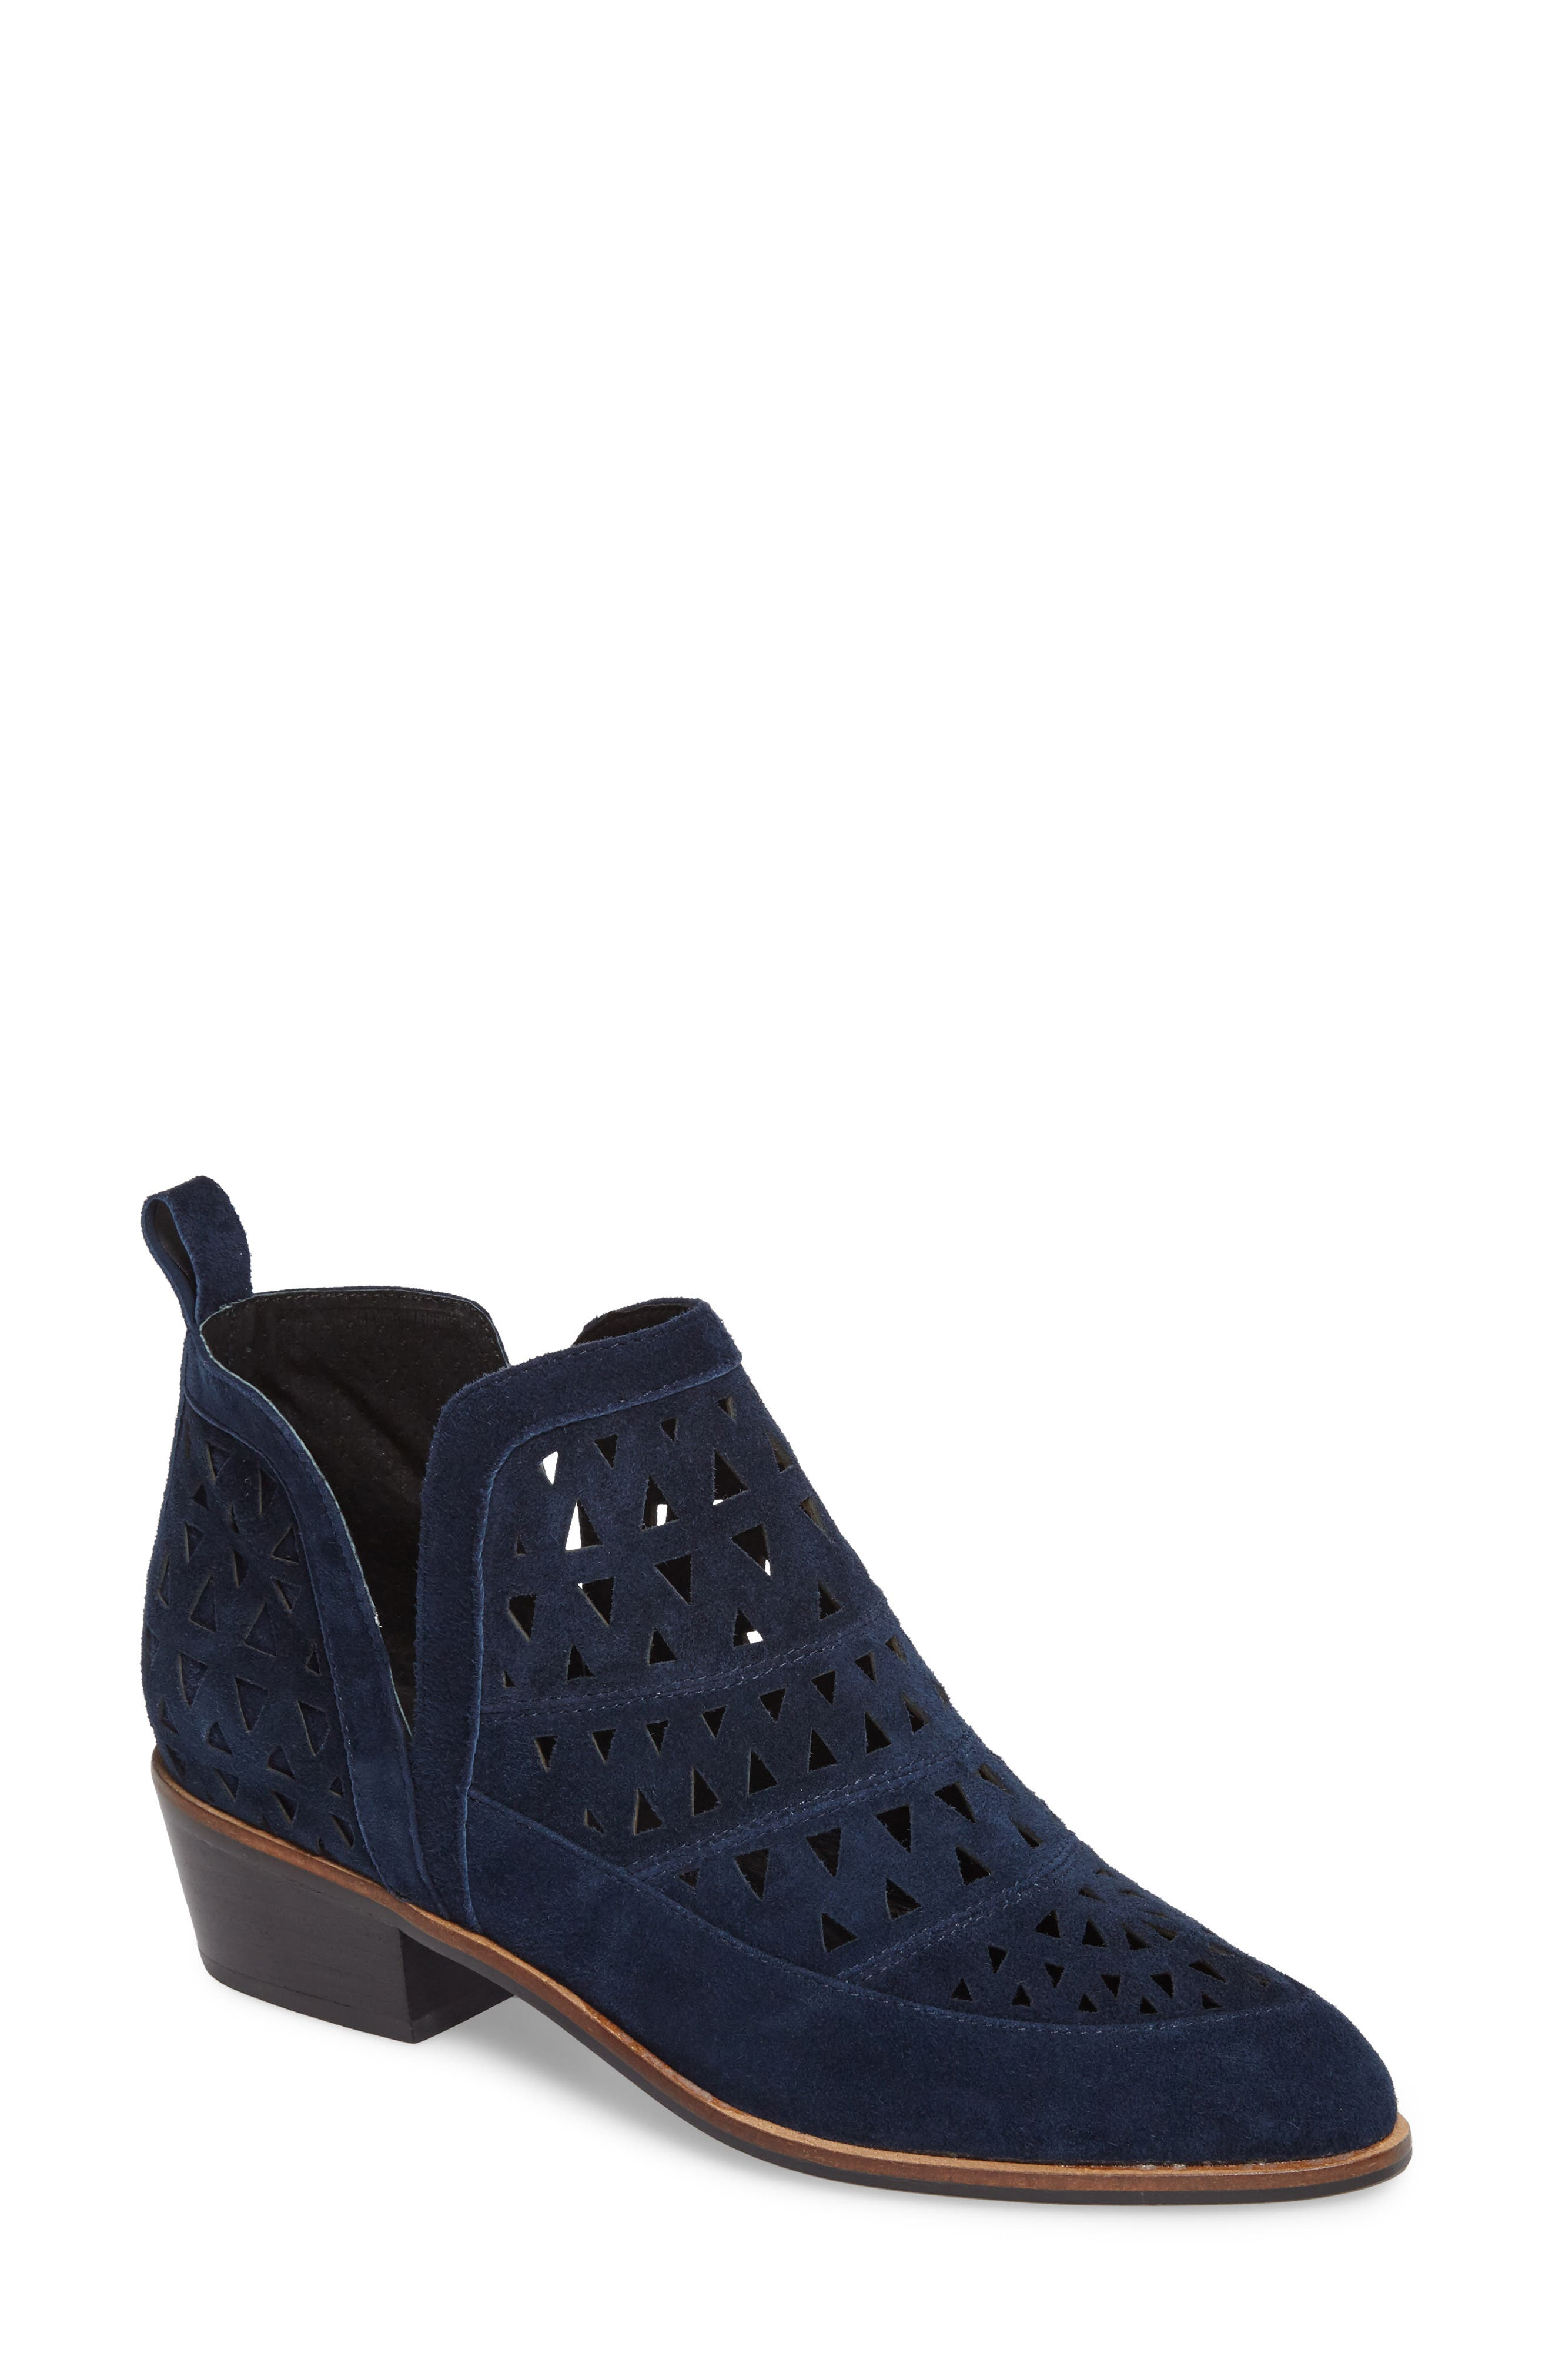 Main Image - Cecelia New York Catherine Cutout Bootie (Women)